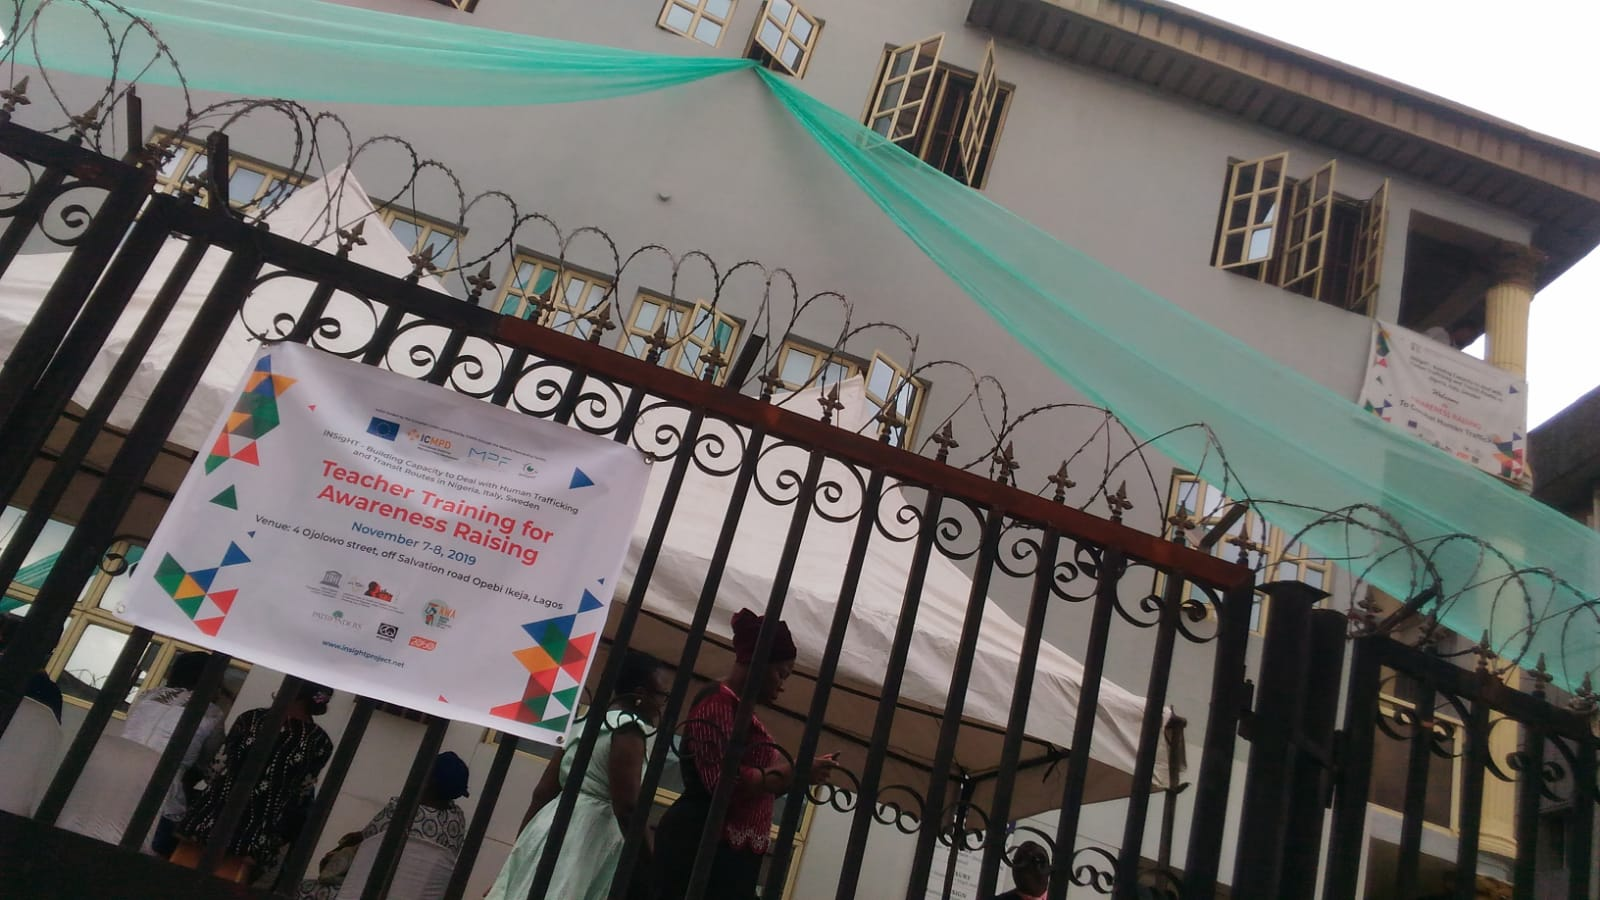 NWAV Help Desk in Lagos. Outcome of the Open Day for local authorities and stakeholders, November 7th, 2019